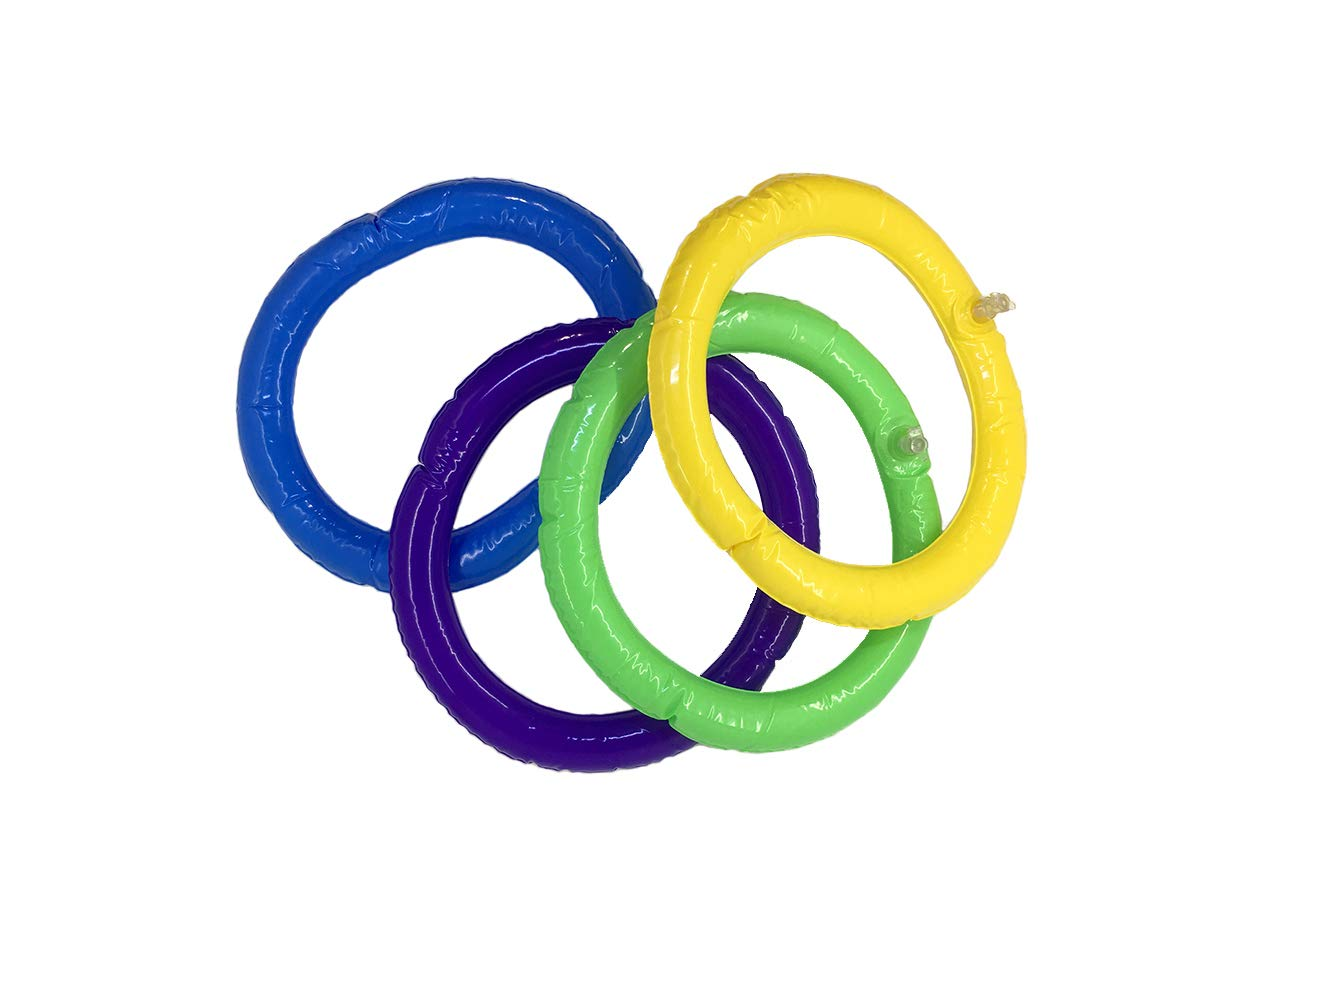 imflyker Ring Toss Game for Party